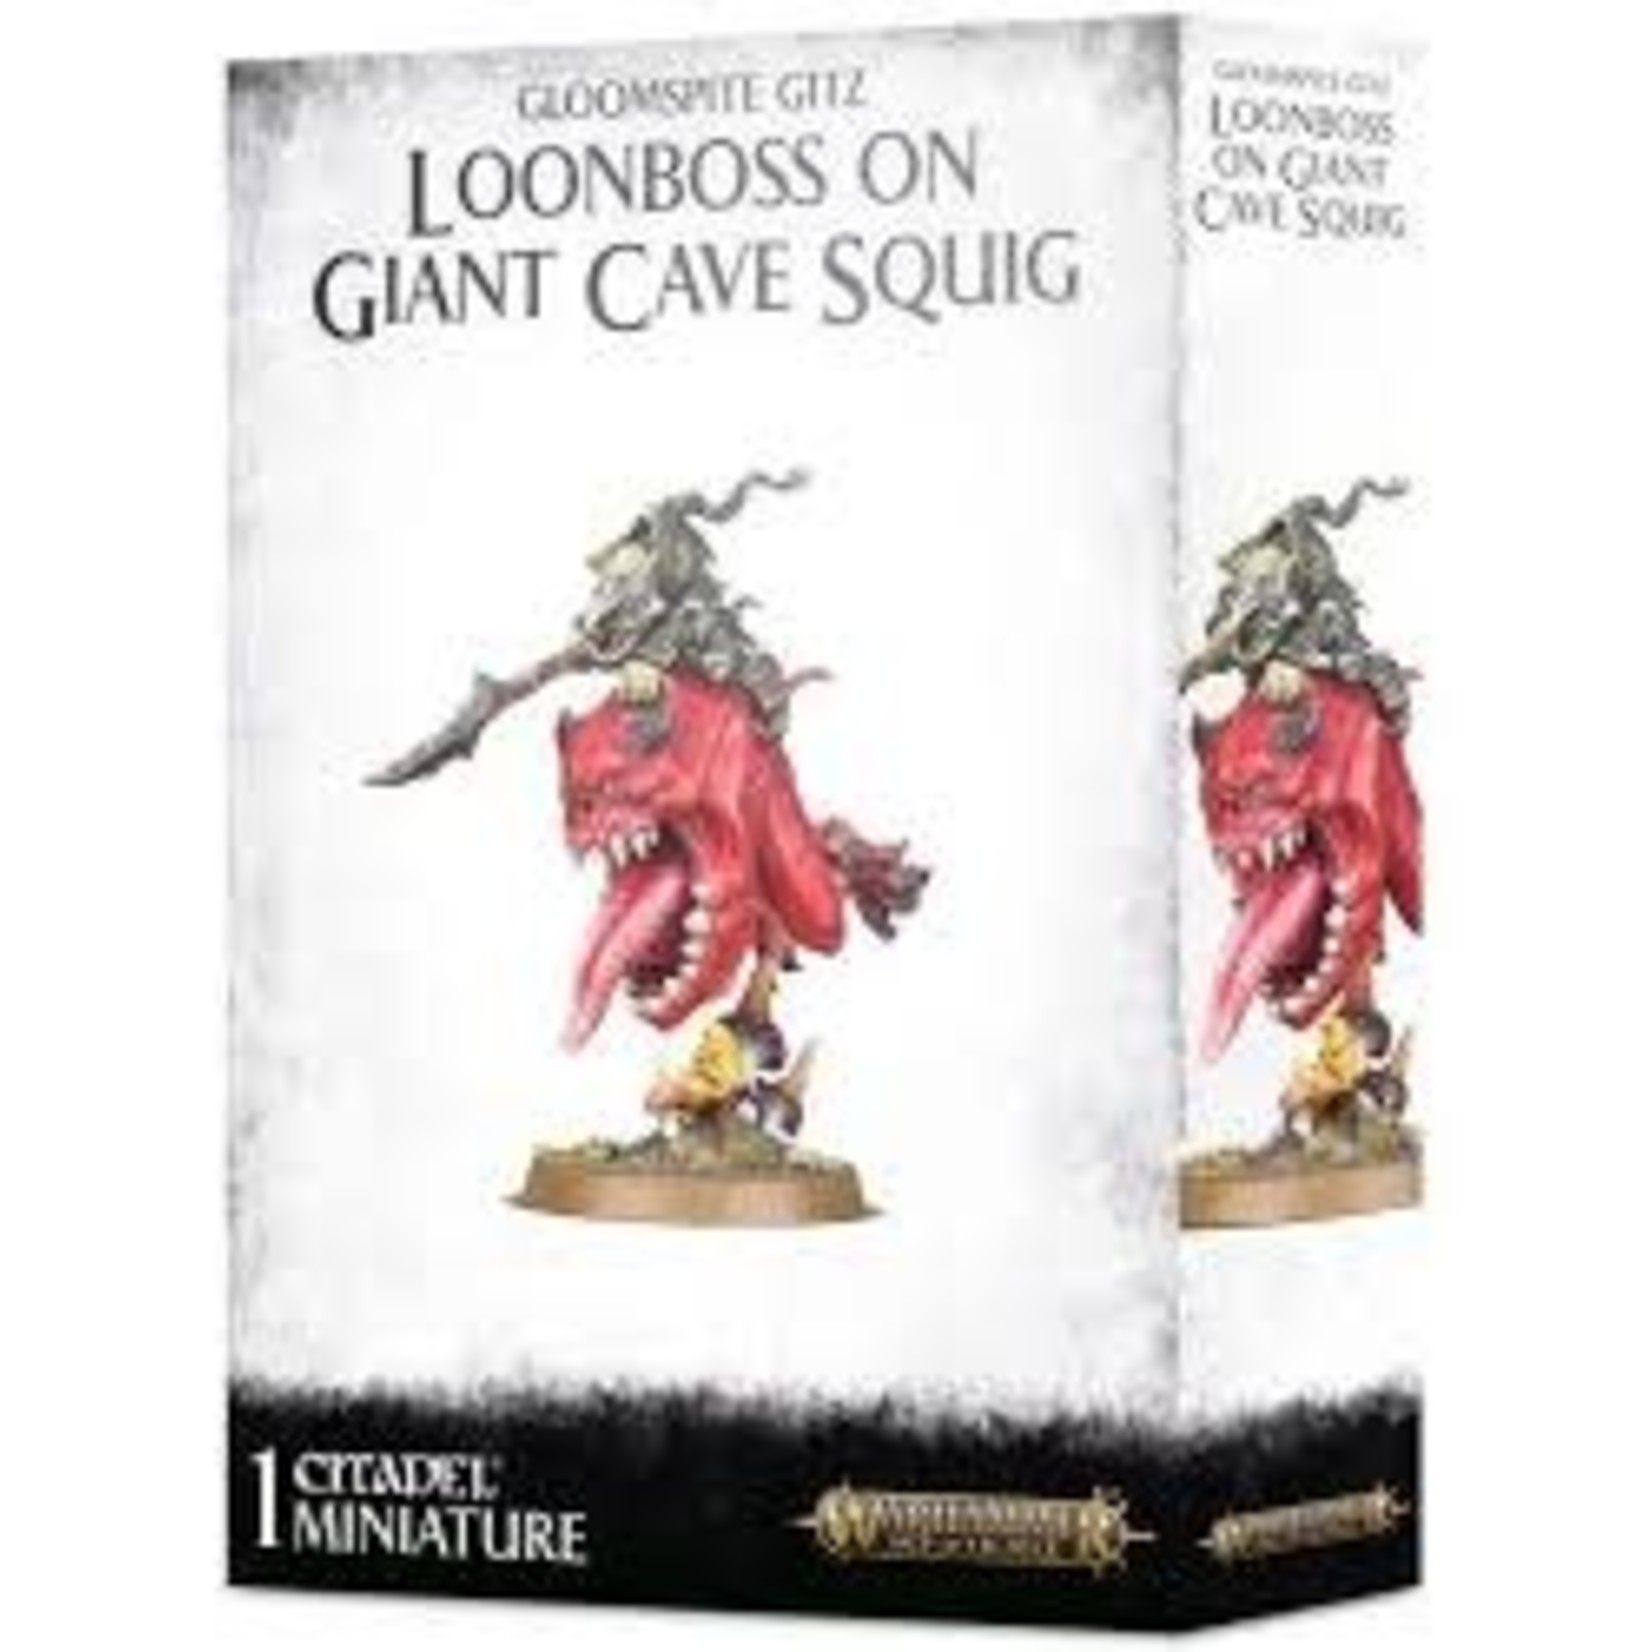 Gloomspite Loonboss on Cave Squig (AOS)